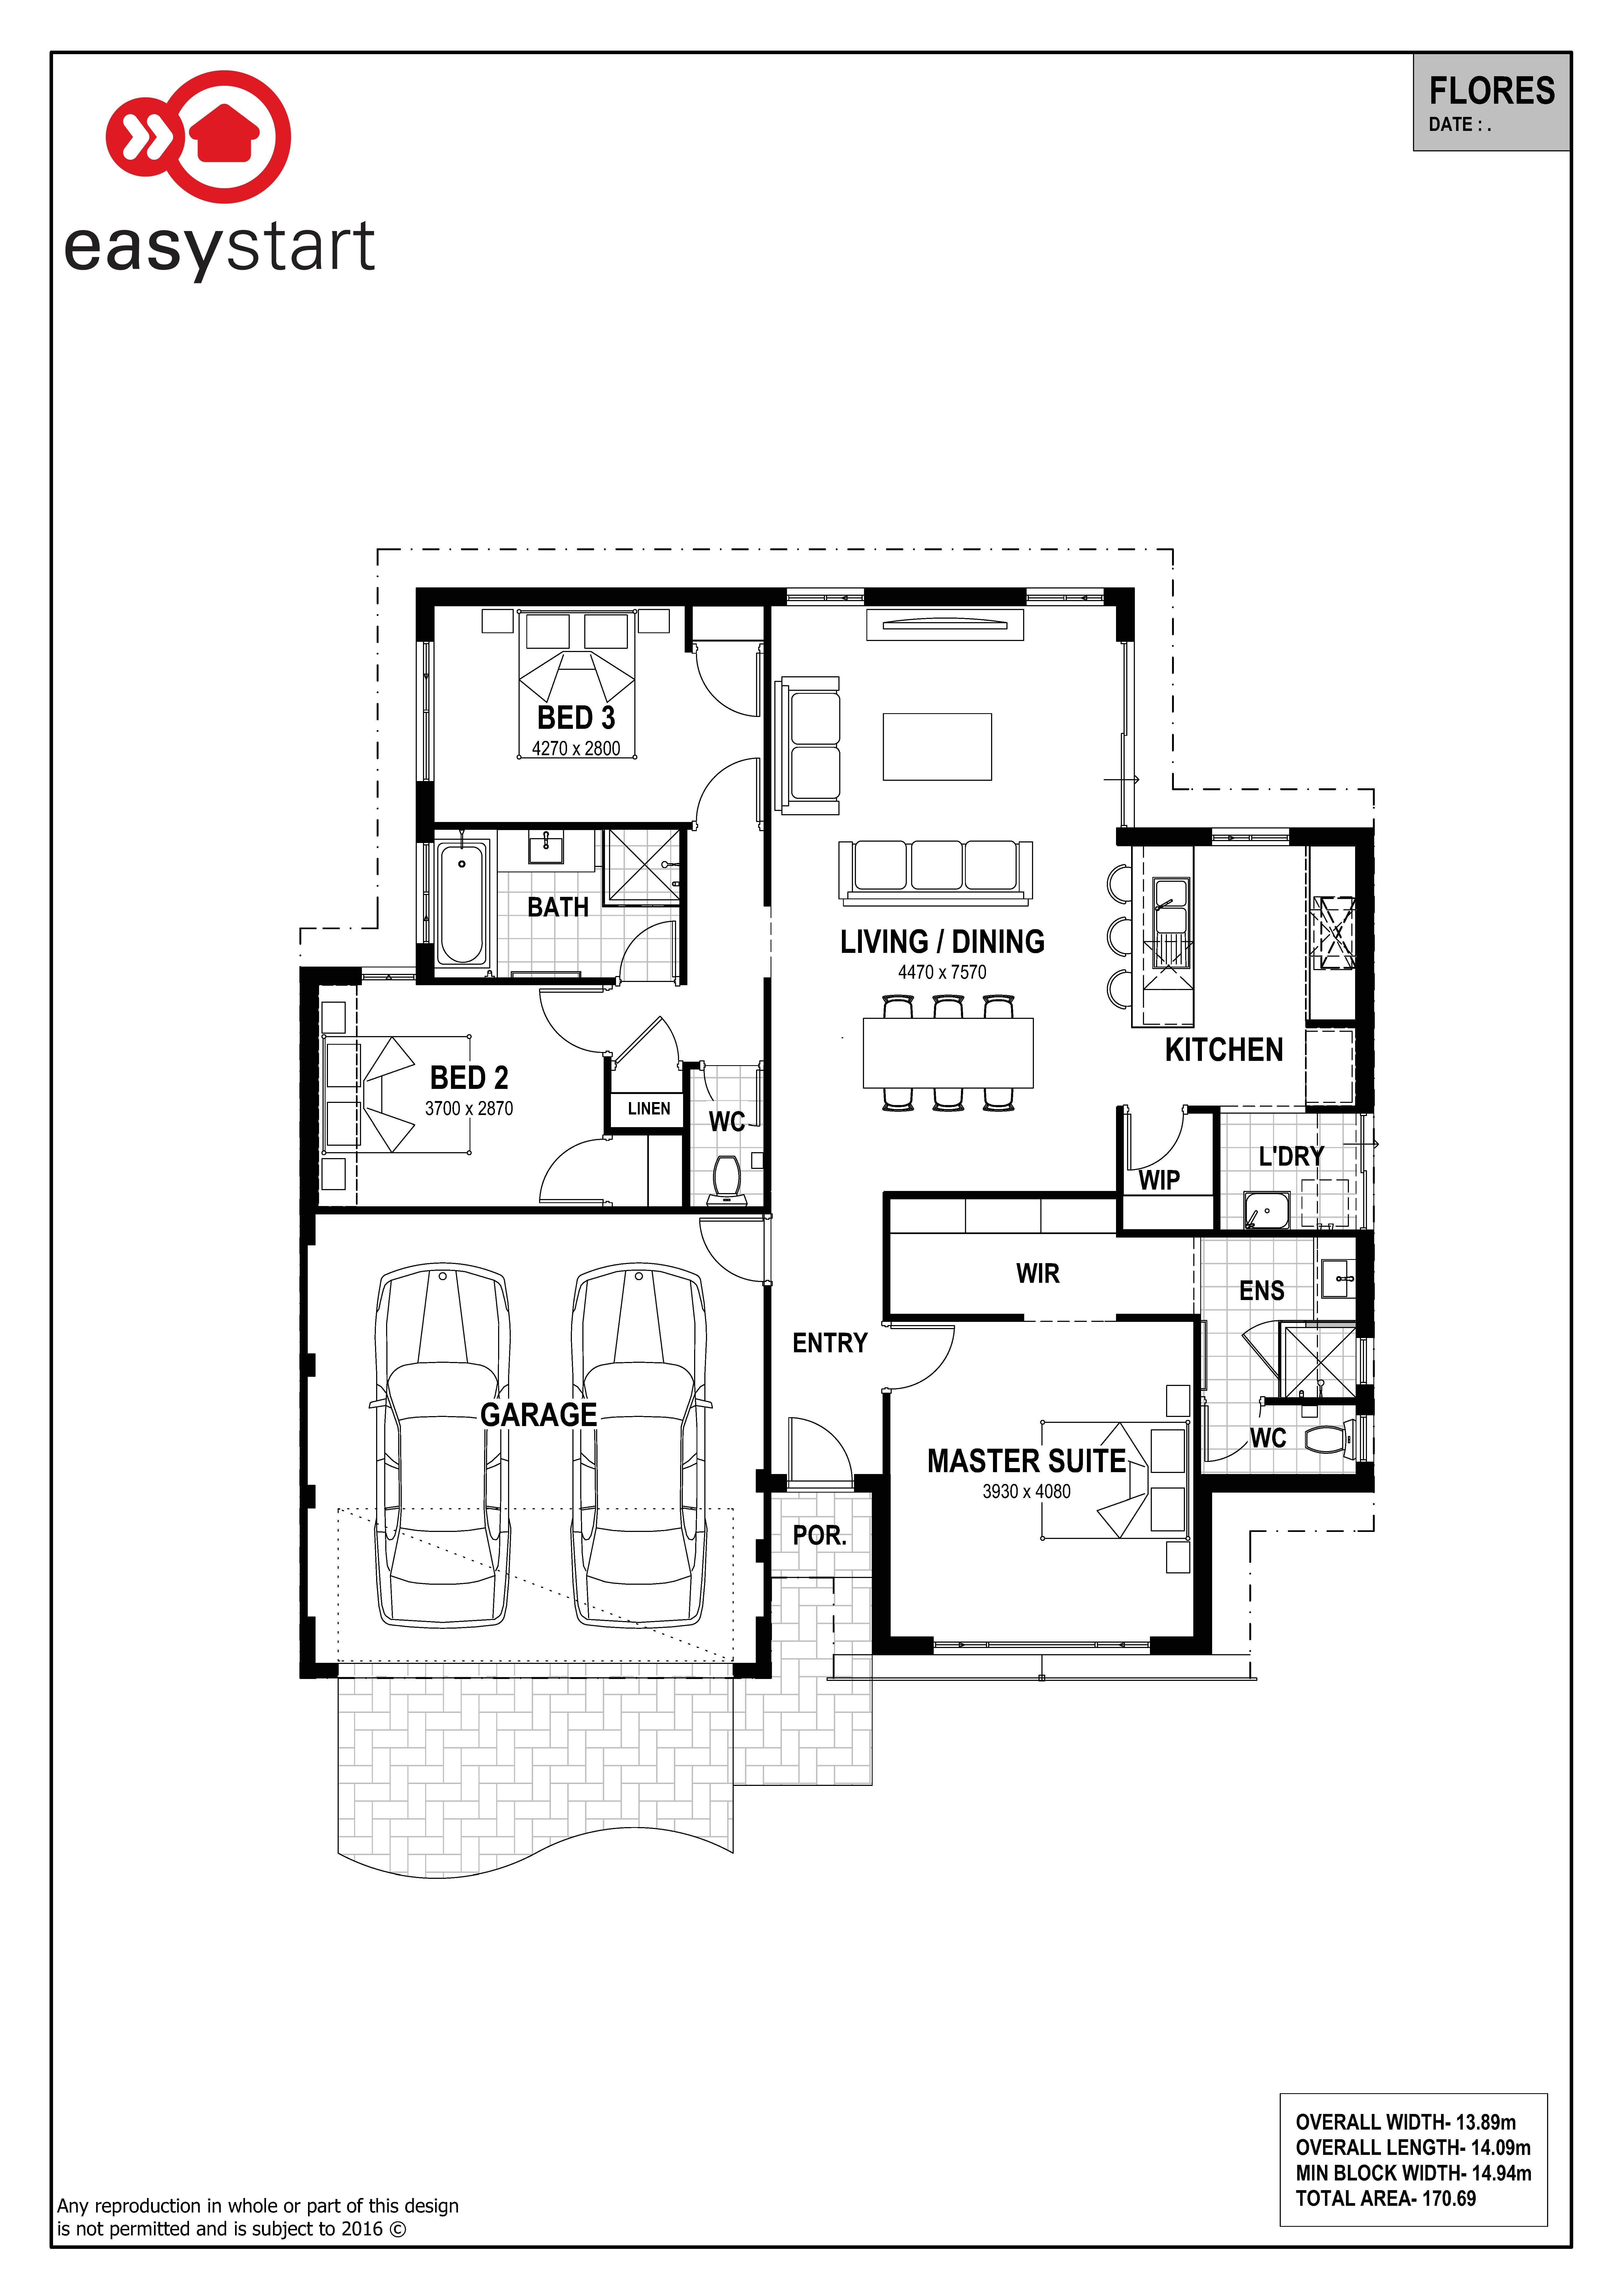 flores easystart home designs perth 2017 house plans flores rh pinterest cl